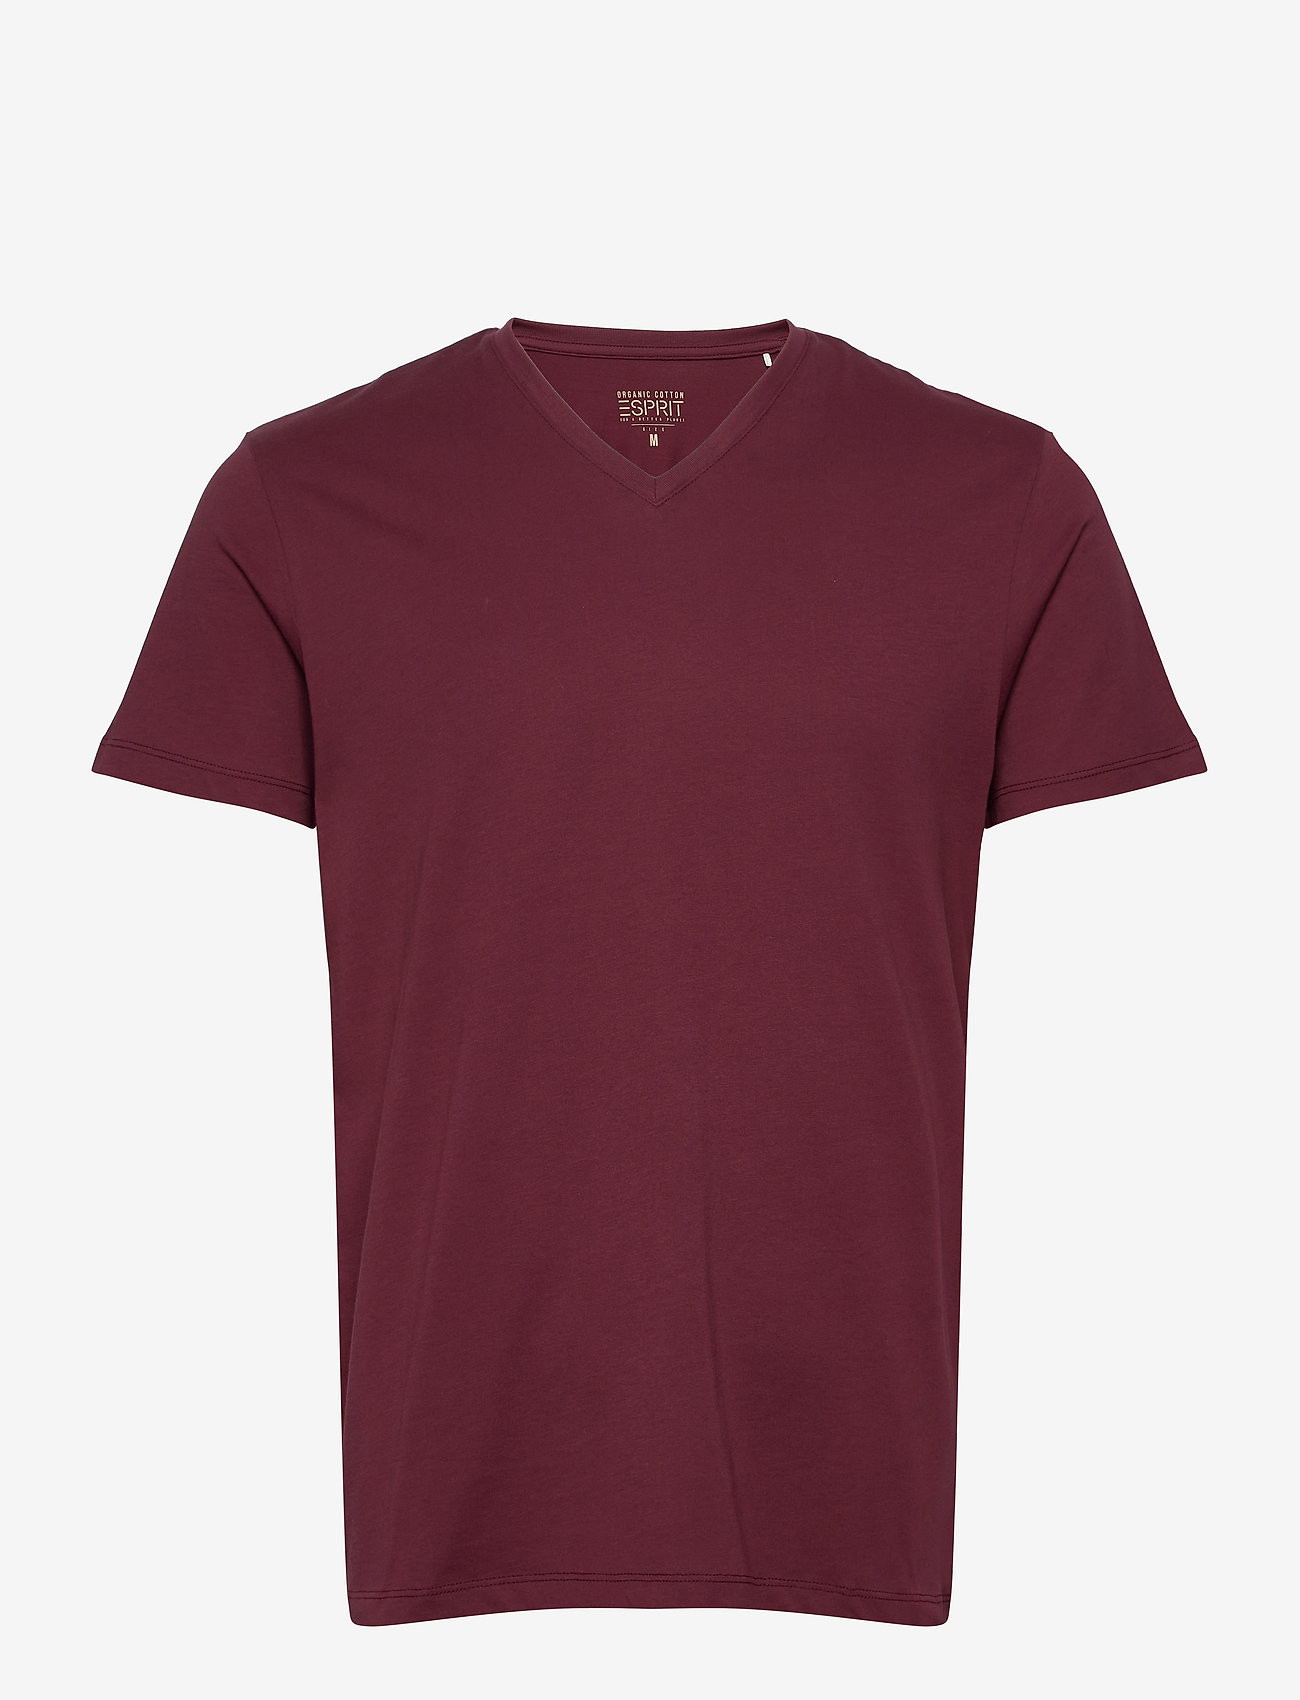 Esprit Casual - T-Shirts - basic t-shirts - bordeaux red - 0